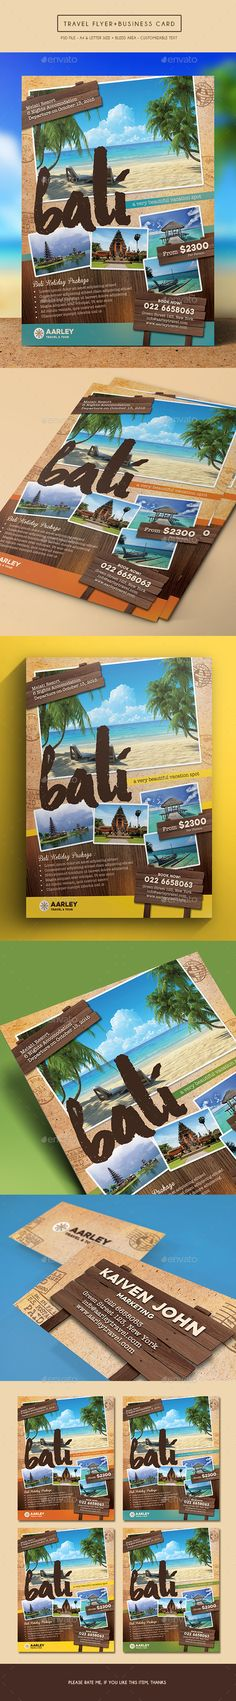 Download Free Graphicriver Travel Flyer + Business Card #ad #advertisement #agency #agent #beach #destination #holidayflyer #holidays #hotel #magazinead #packages #pamphlet #poster #promotion #tour #tourism #travel #travelagencyflyer #travelflyer #travelling #trip #tropical #vacation